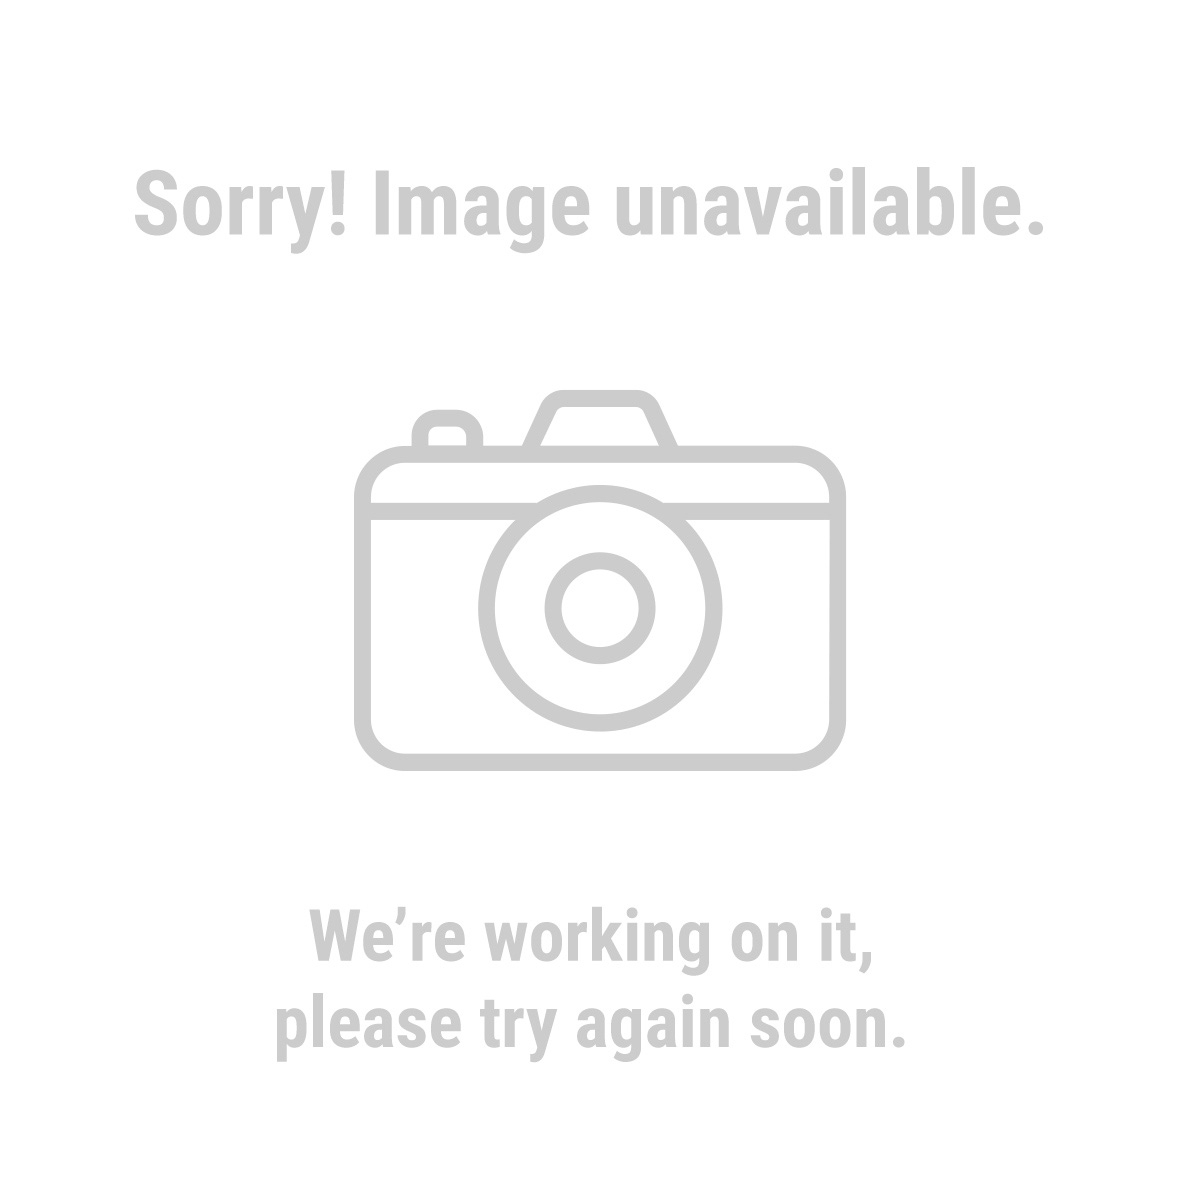 Central-Forge 95203 Portable Carpenter's Vise